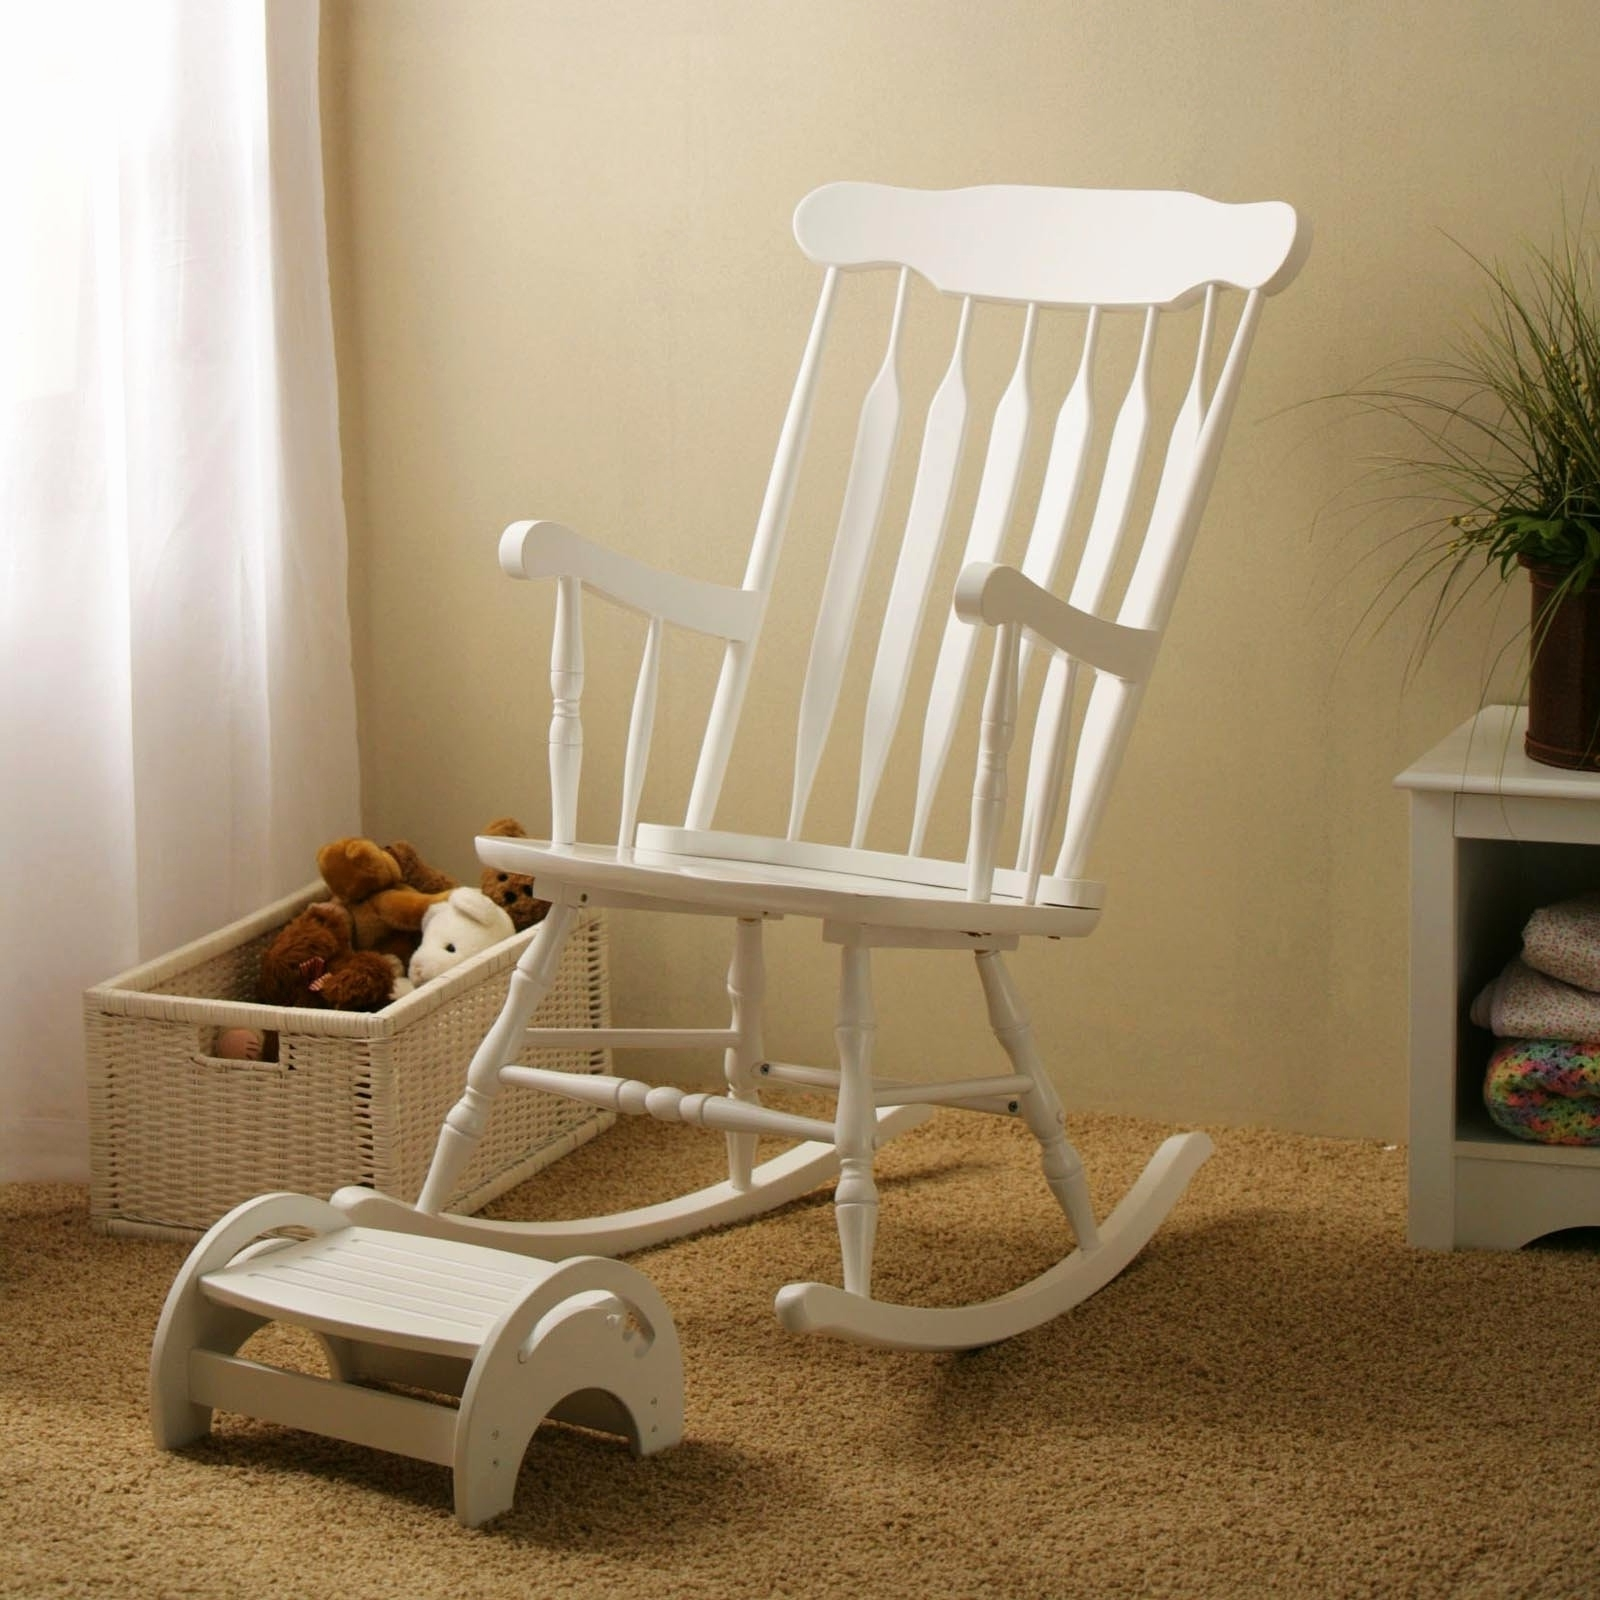 Latest White Wicker Rocking Chair For Nursery Within Luxury Wicker Rocking Chair Graphics Home Improvement Lovely (View 3 of 15)